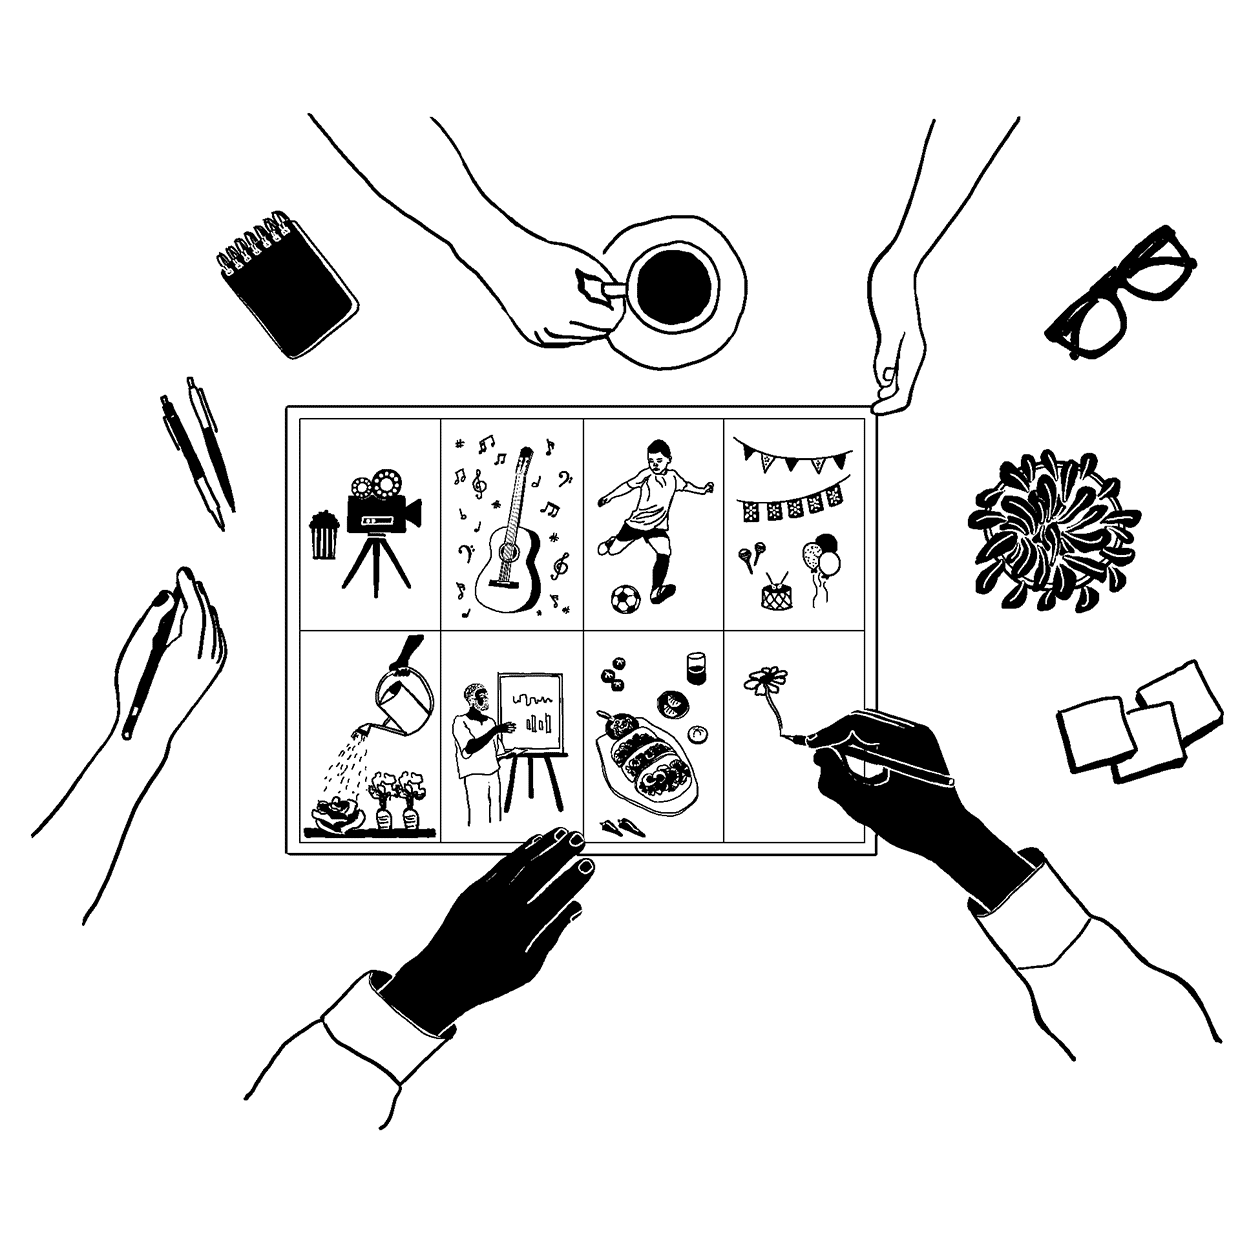 Black and white drawing showing a nearly-completed Design Sprint worksheet. The worksheet has 8 squares, and different drawings representing kinds of community strategies are in each square (a film camera, a guitar, someone playing soccer, a party, a community garden, a community workshop, and a meal). Hands are shown working on completing the drawing together.